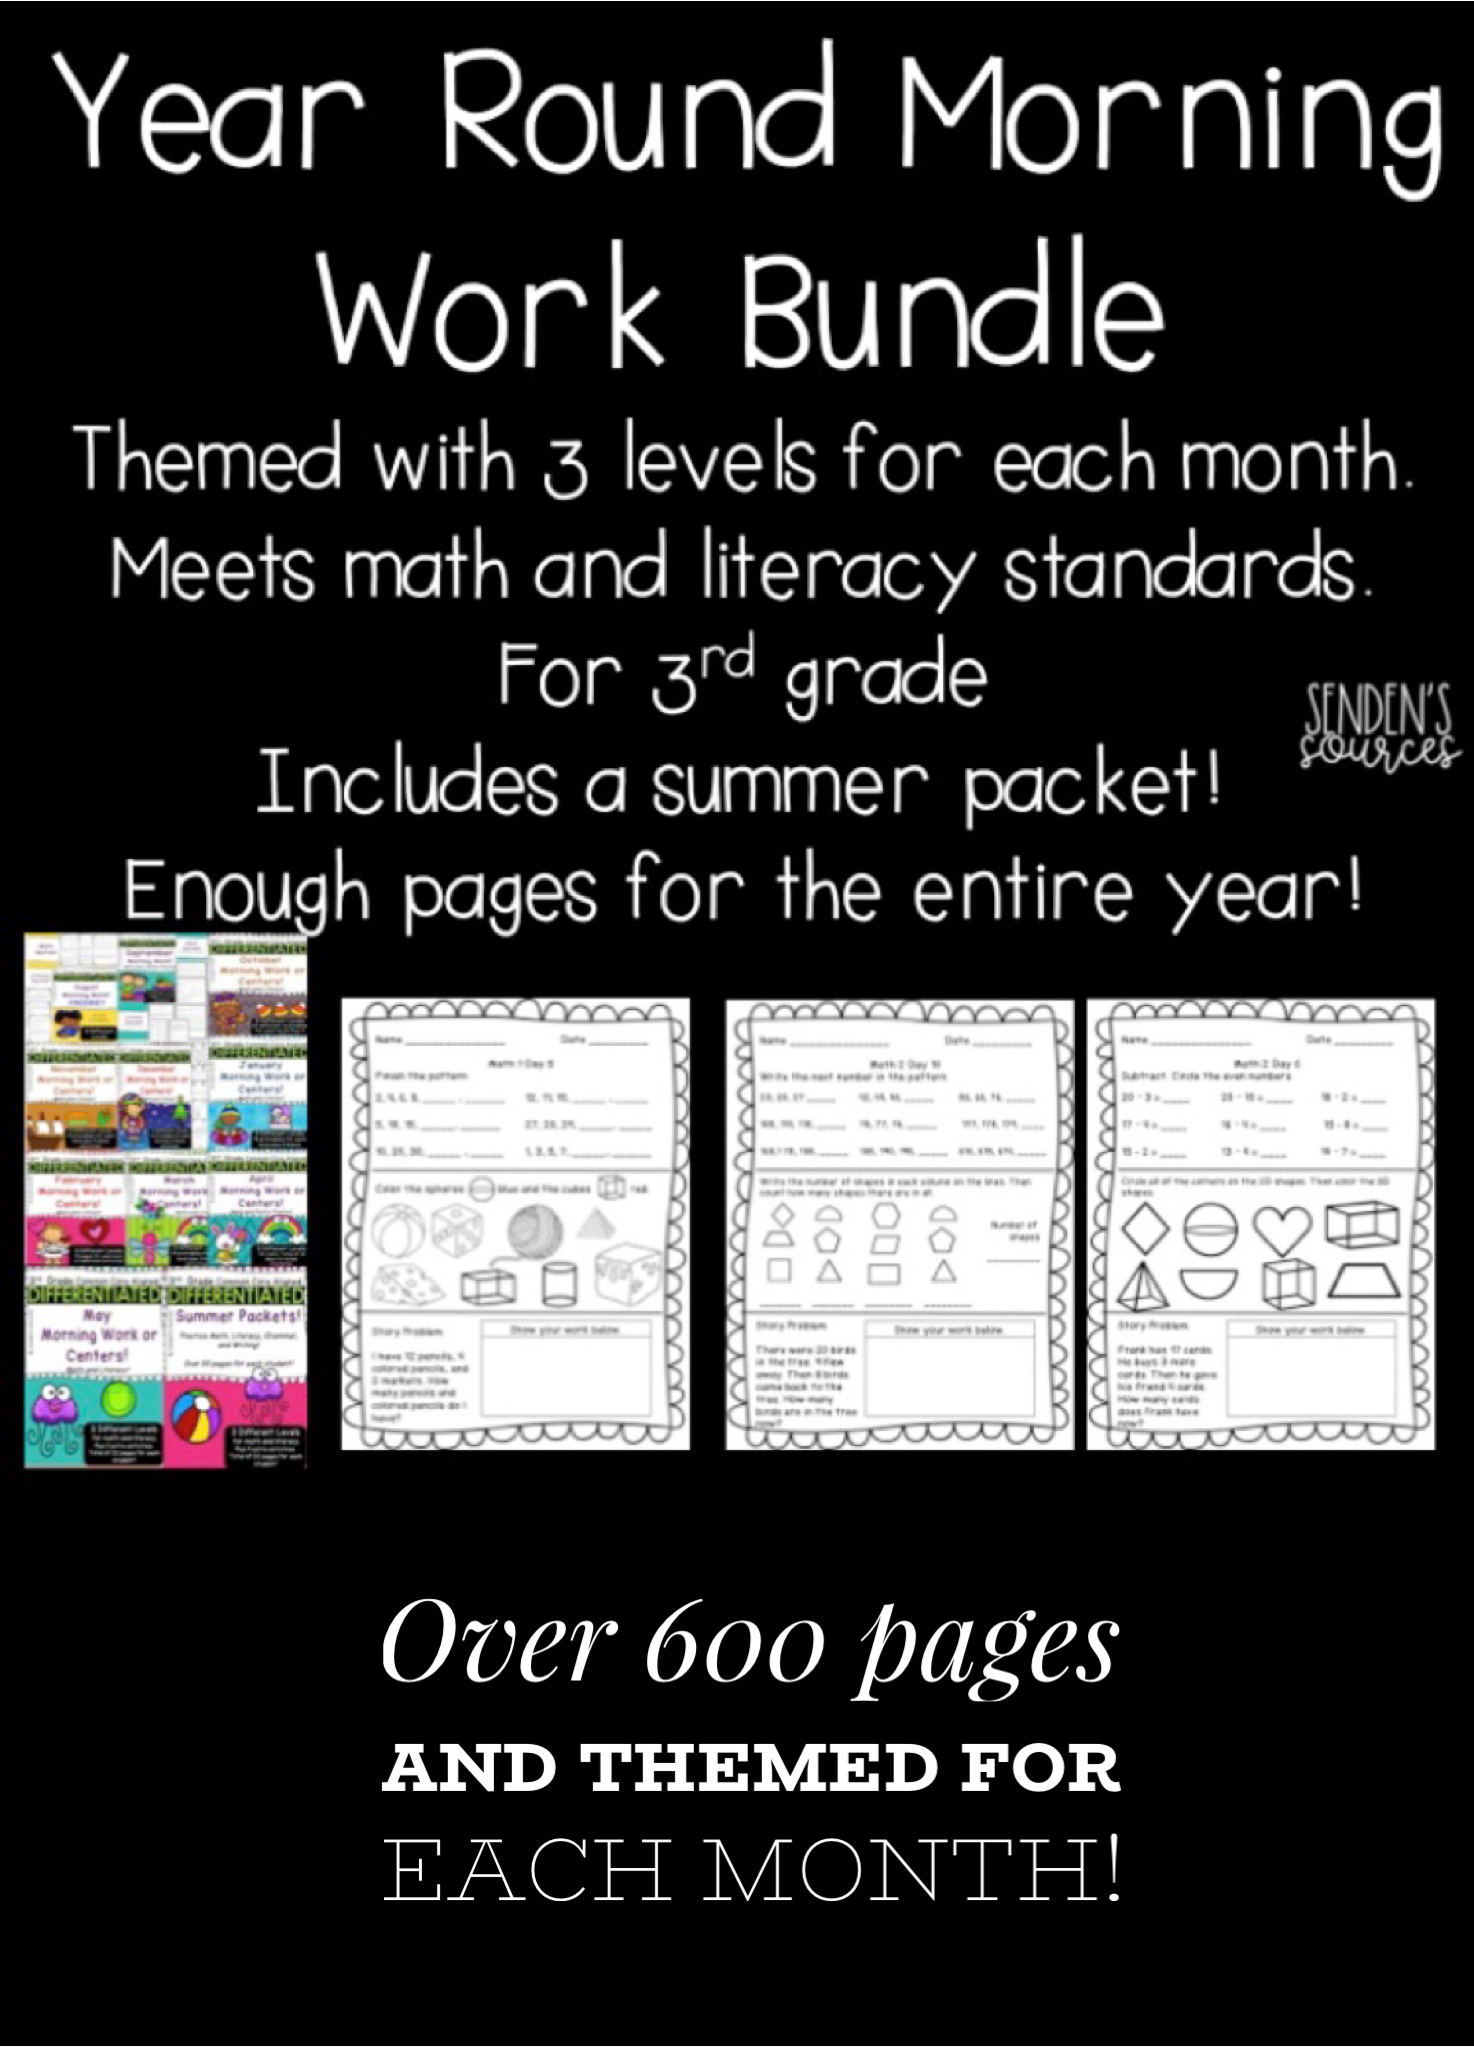 Worksheets For Third Grade Morning Work | Printable Worksheets and